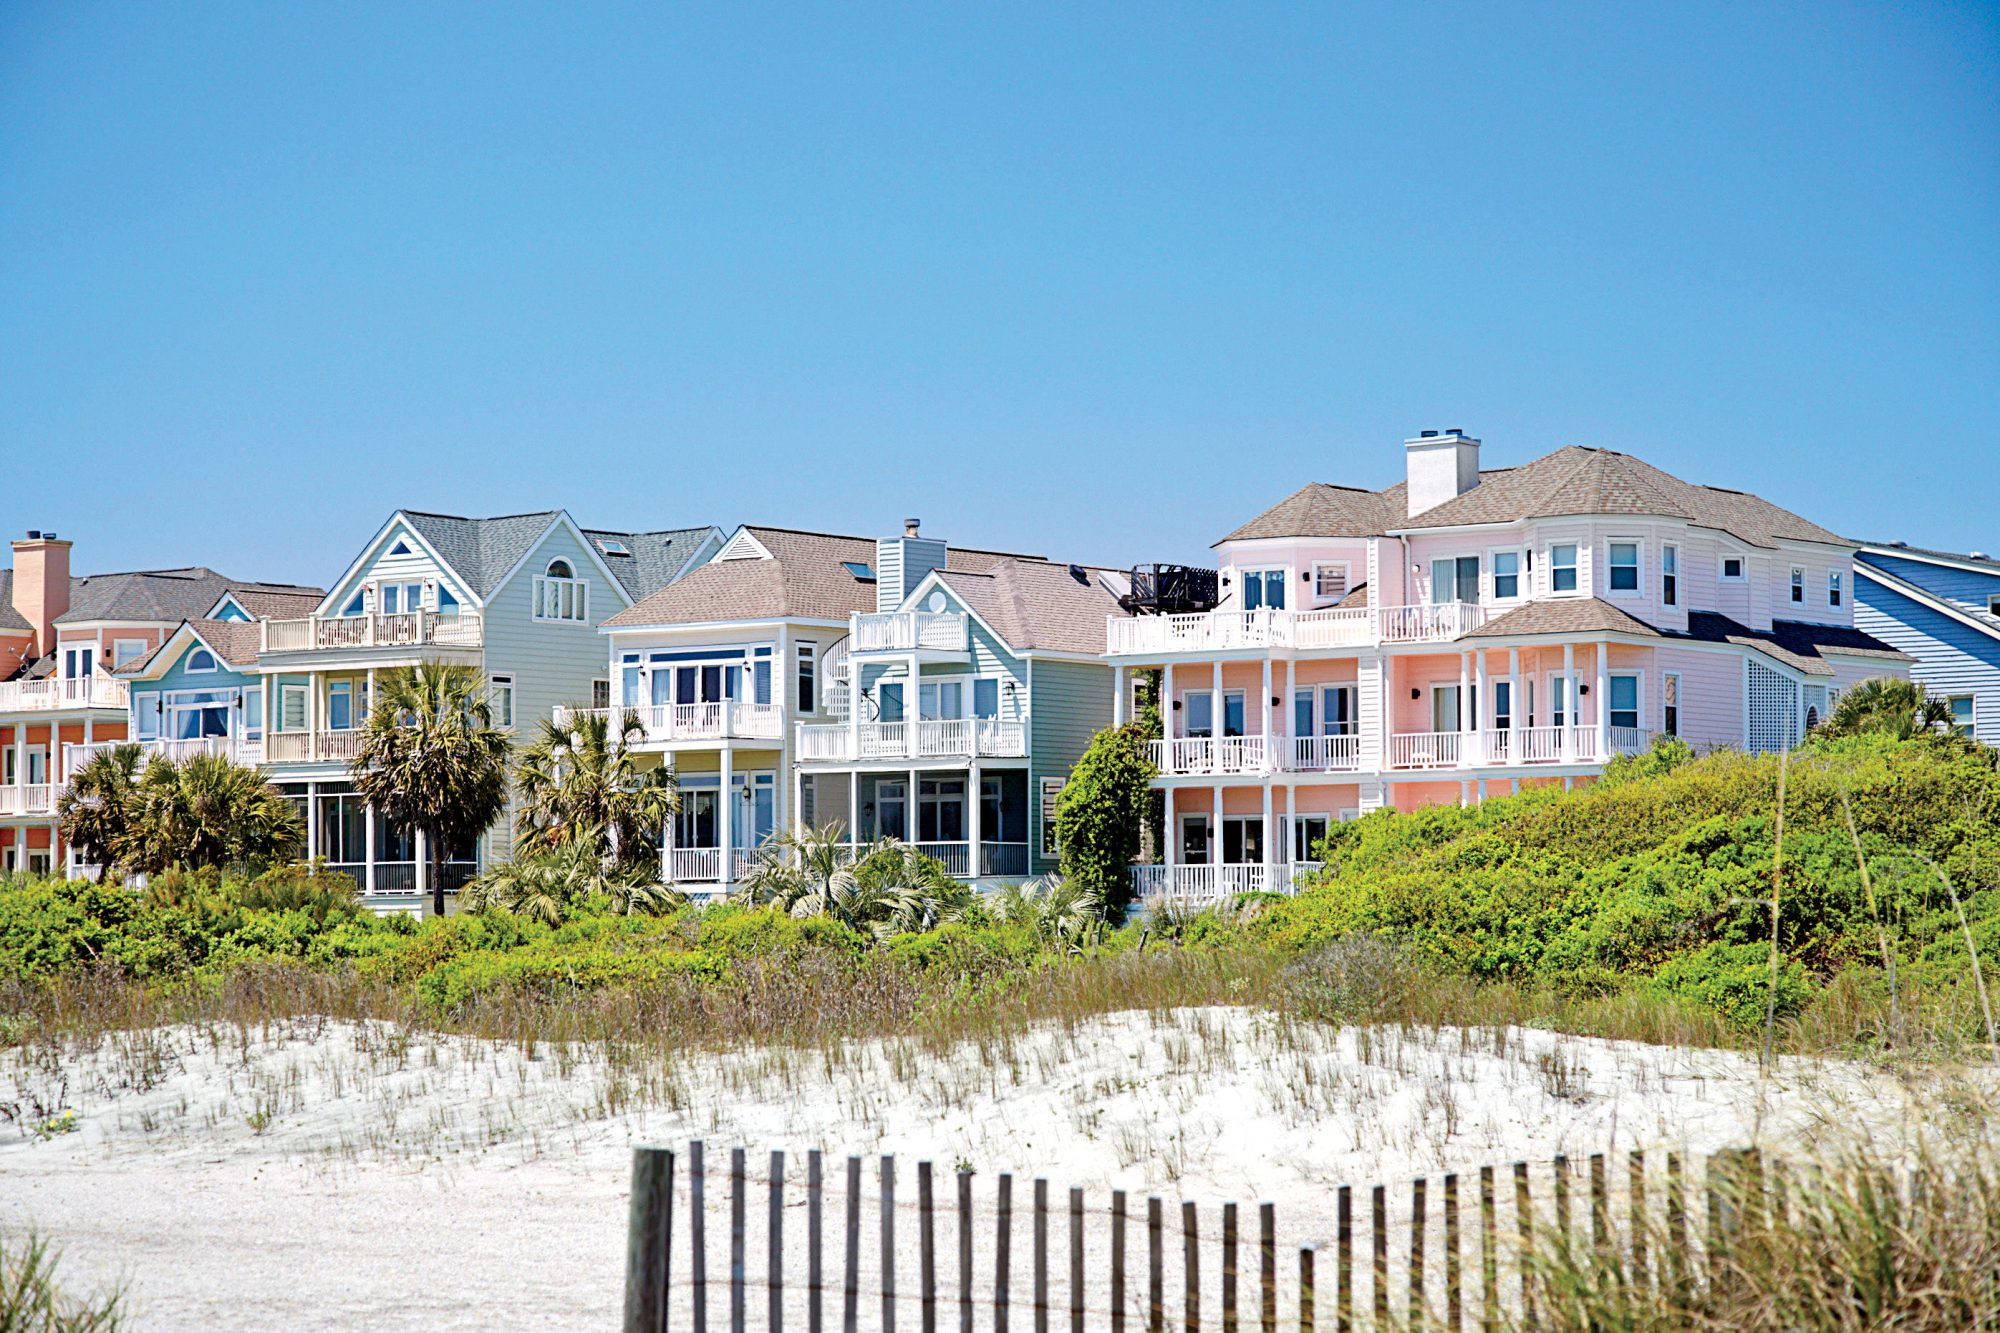 9. Isle of Palms, South Carolina